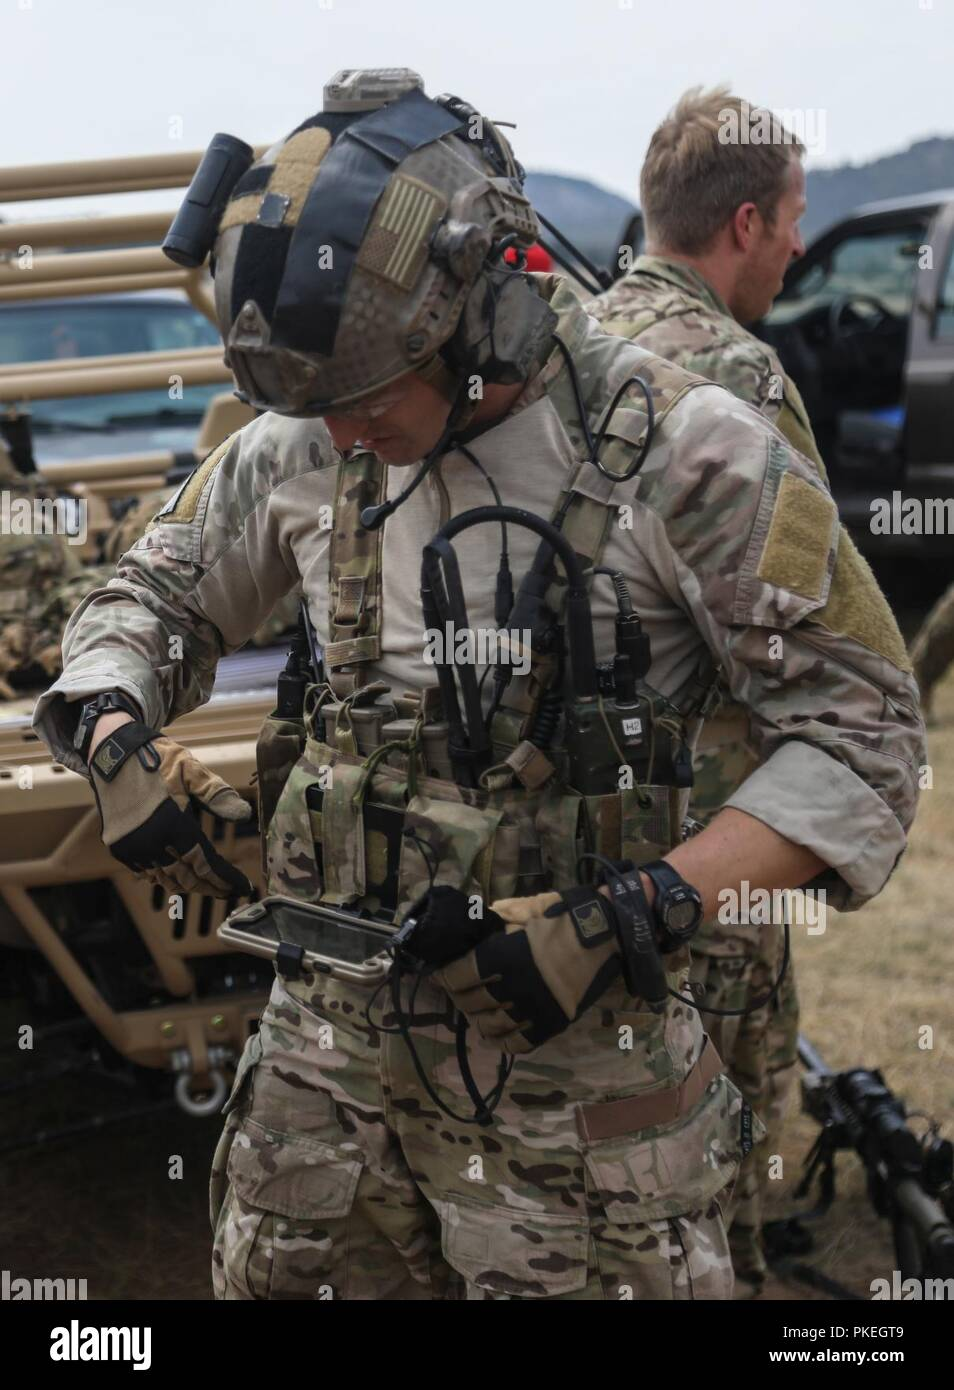 Special Forces Military Free-Fall Operations